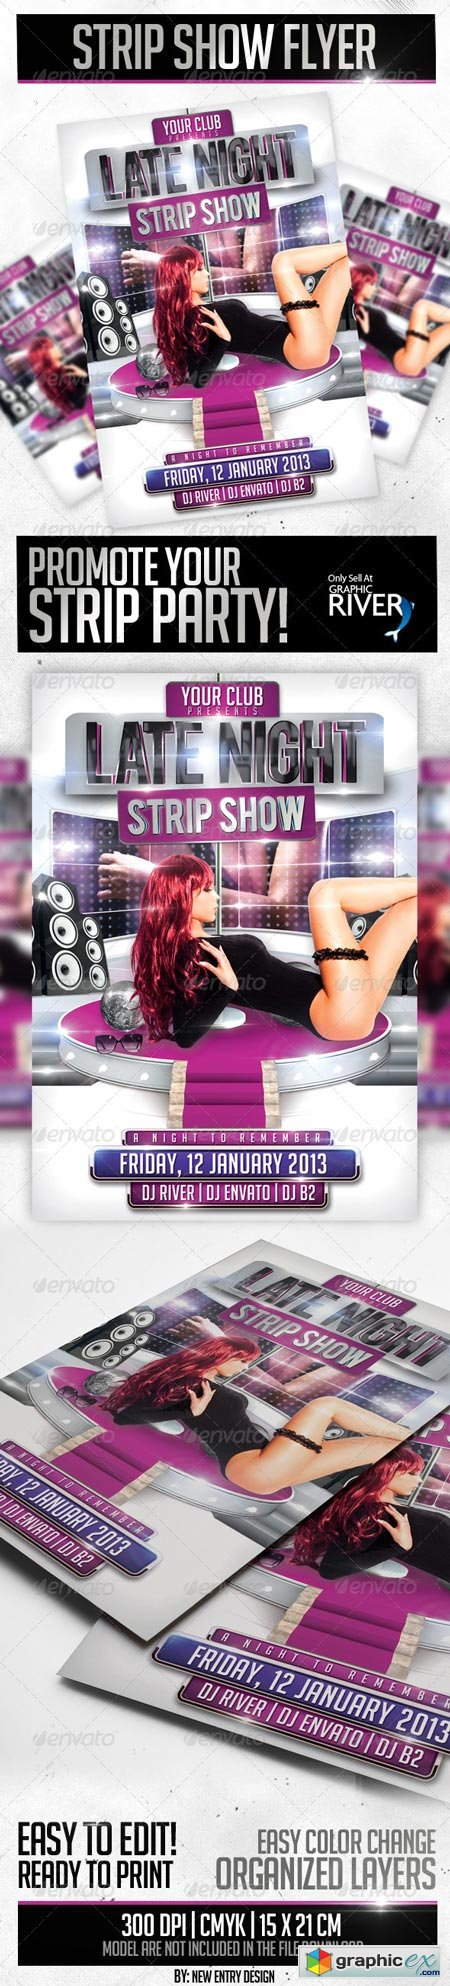 Strip Show Flyer Template 3662051